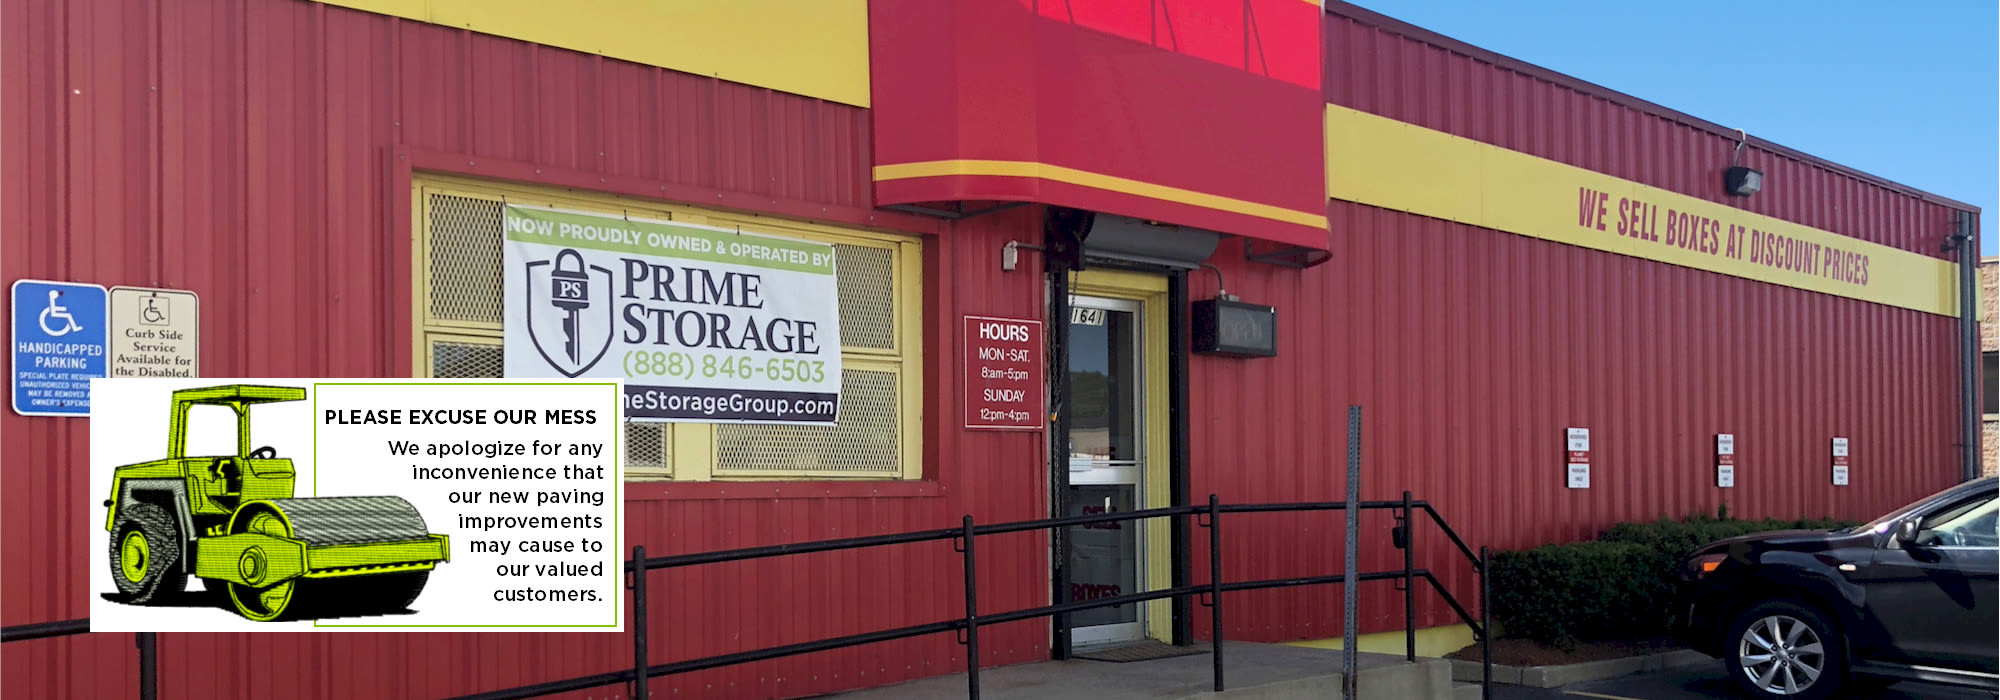 Prime Storage in Hyde Park, MA